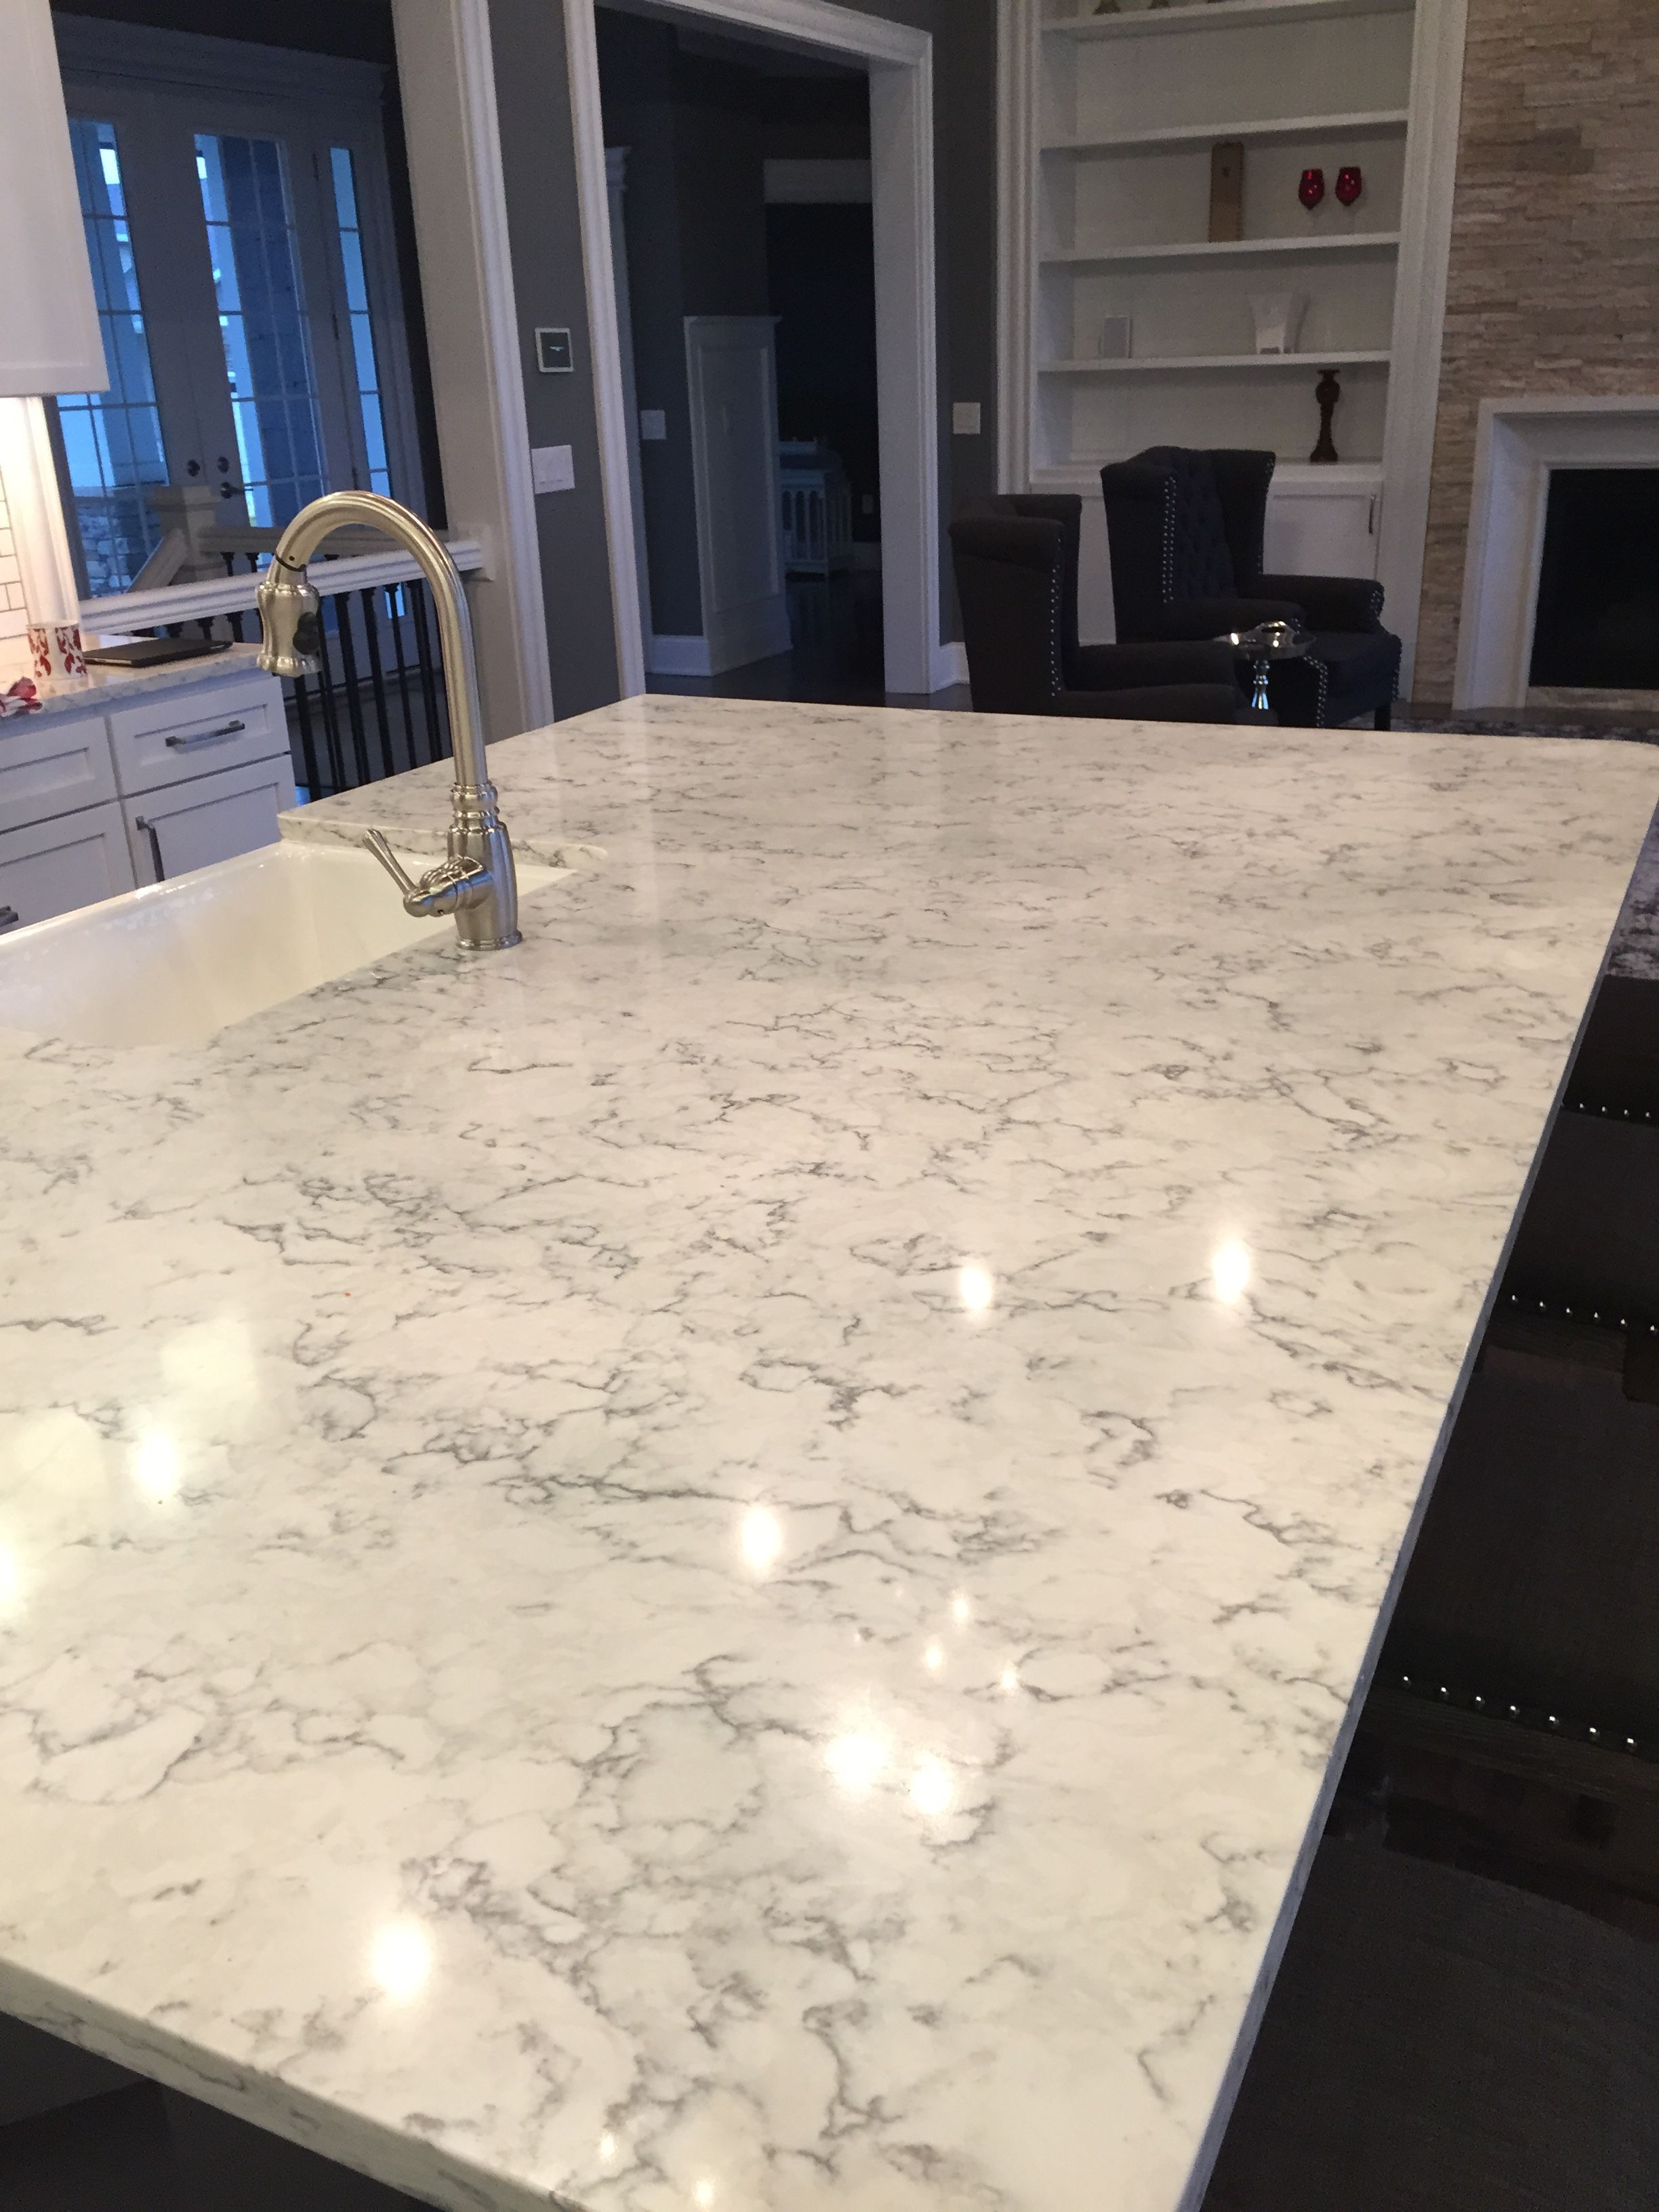 Non Granite Kitchen Countertops 7 Positive Reasons To Use Quartz Stone Countertops Quartz Has A